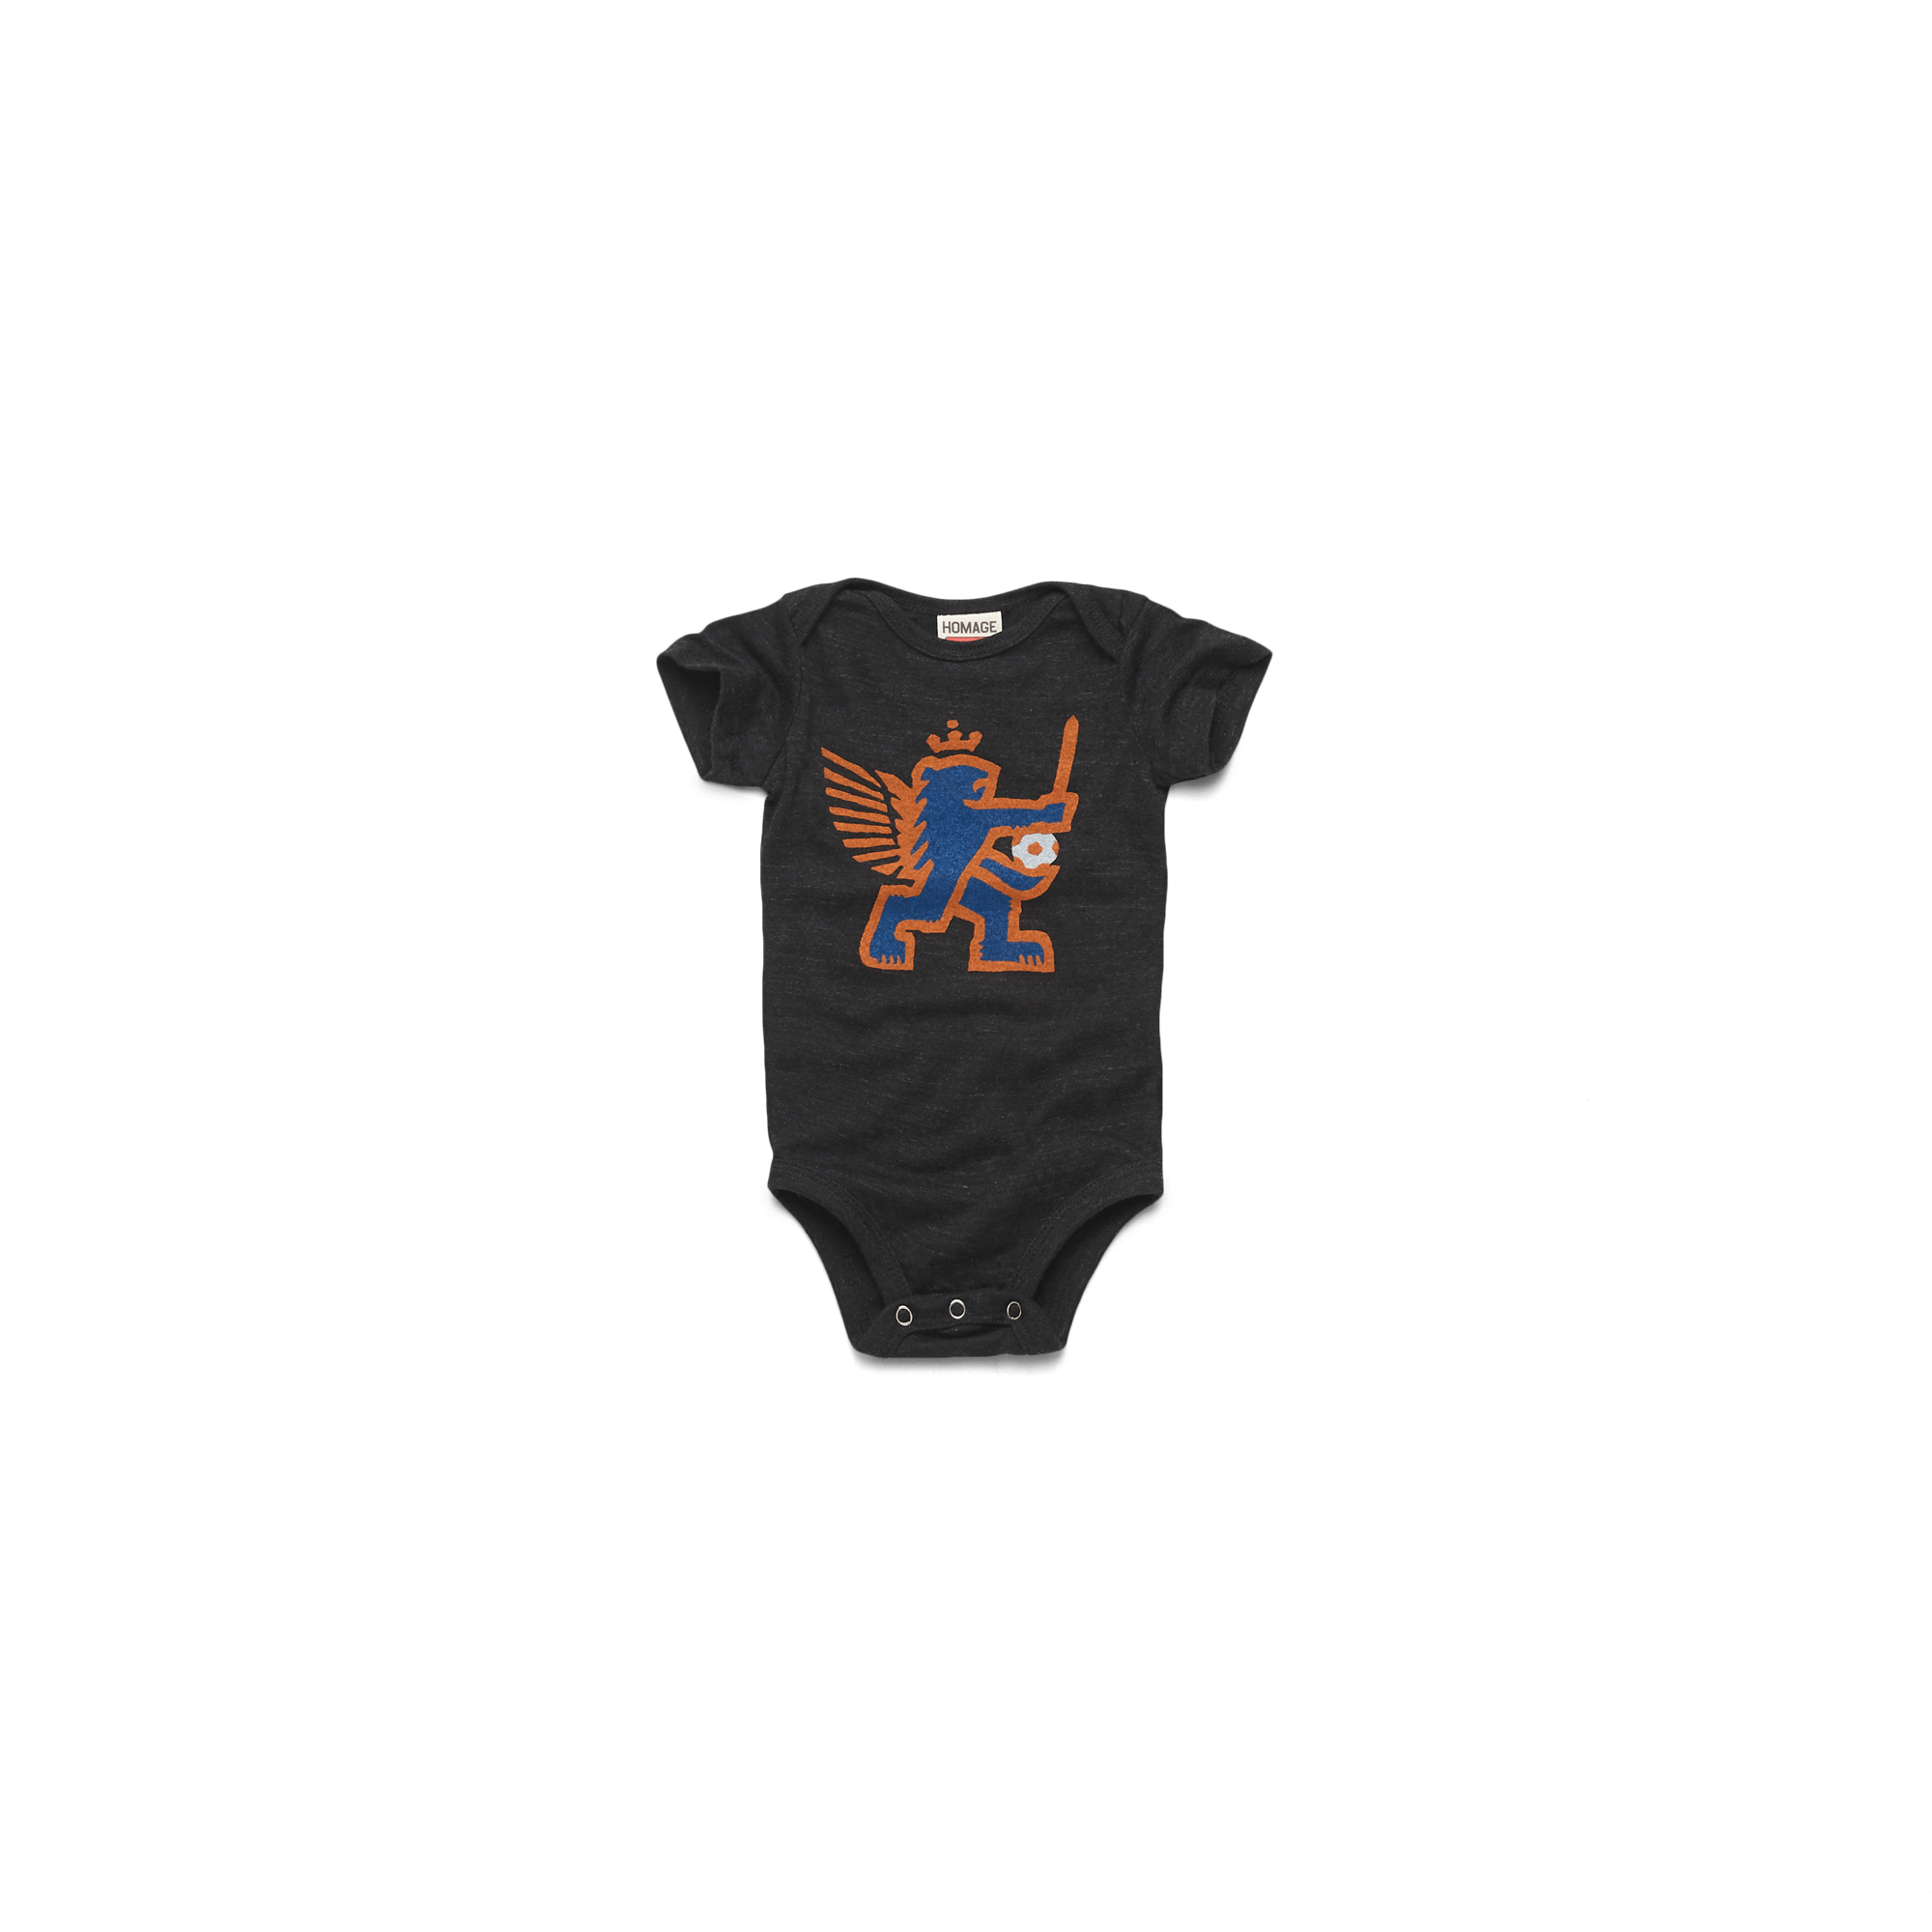 Retro Infant Clothing Baby e Pieces Hoo s And More – HOMAGE